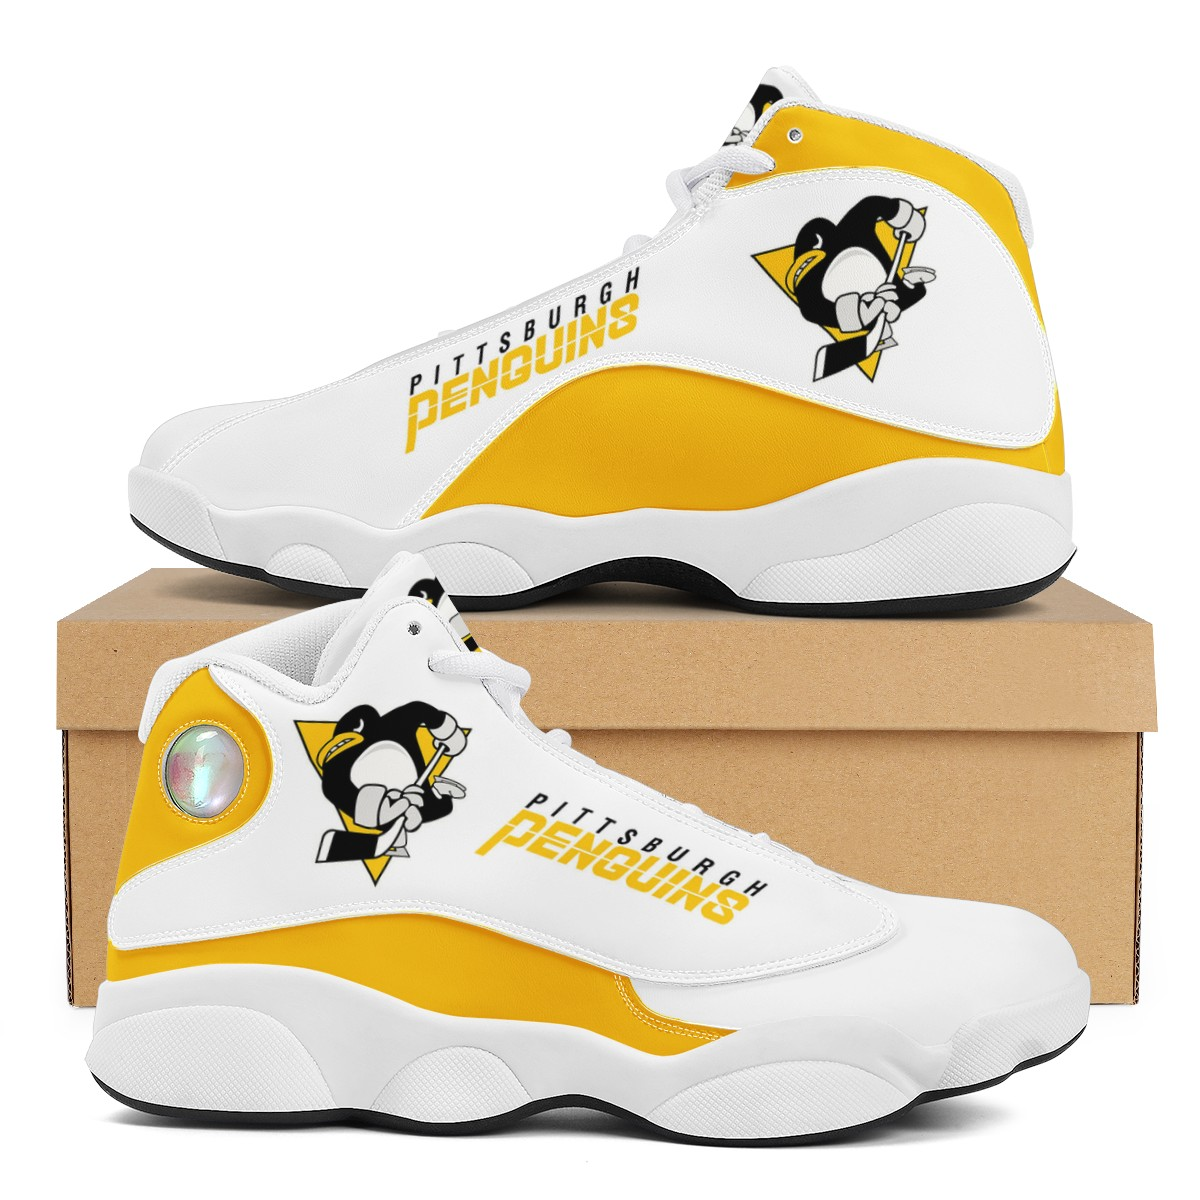 Women's Pittsburgh Penguins Limited Edition JD13 Sneakers 002